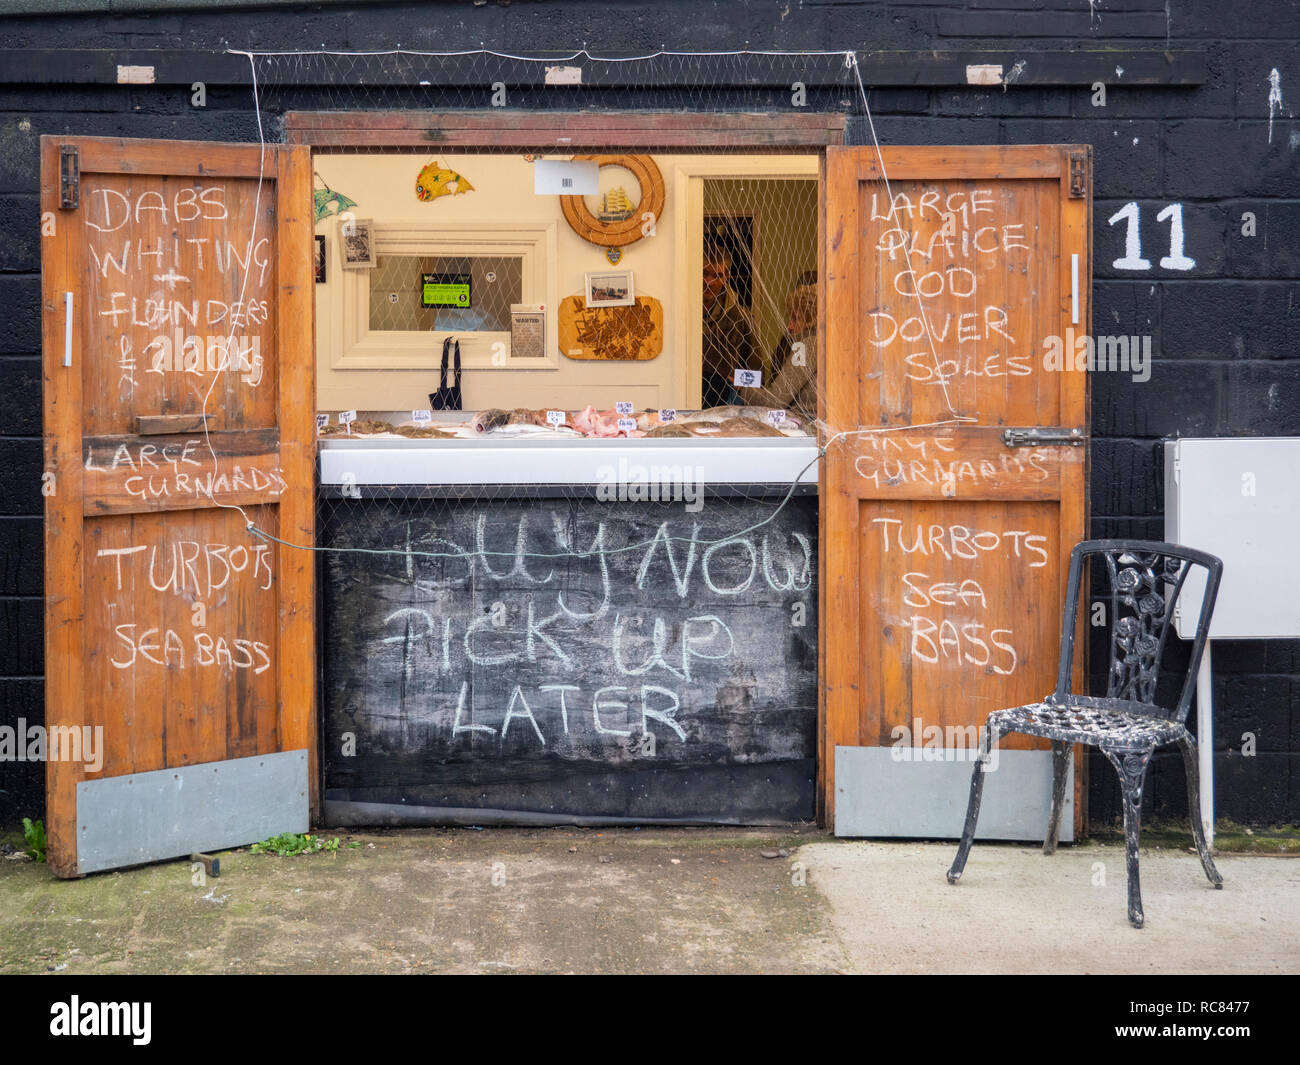 A fresh fish shop or shed in Hastings East Sussex UK with signs for fish on sale written in chalk on the walls. - Stock Image